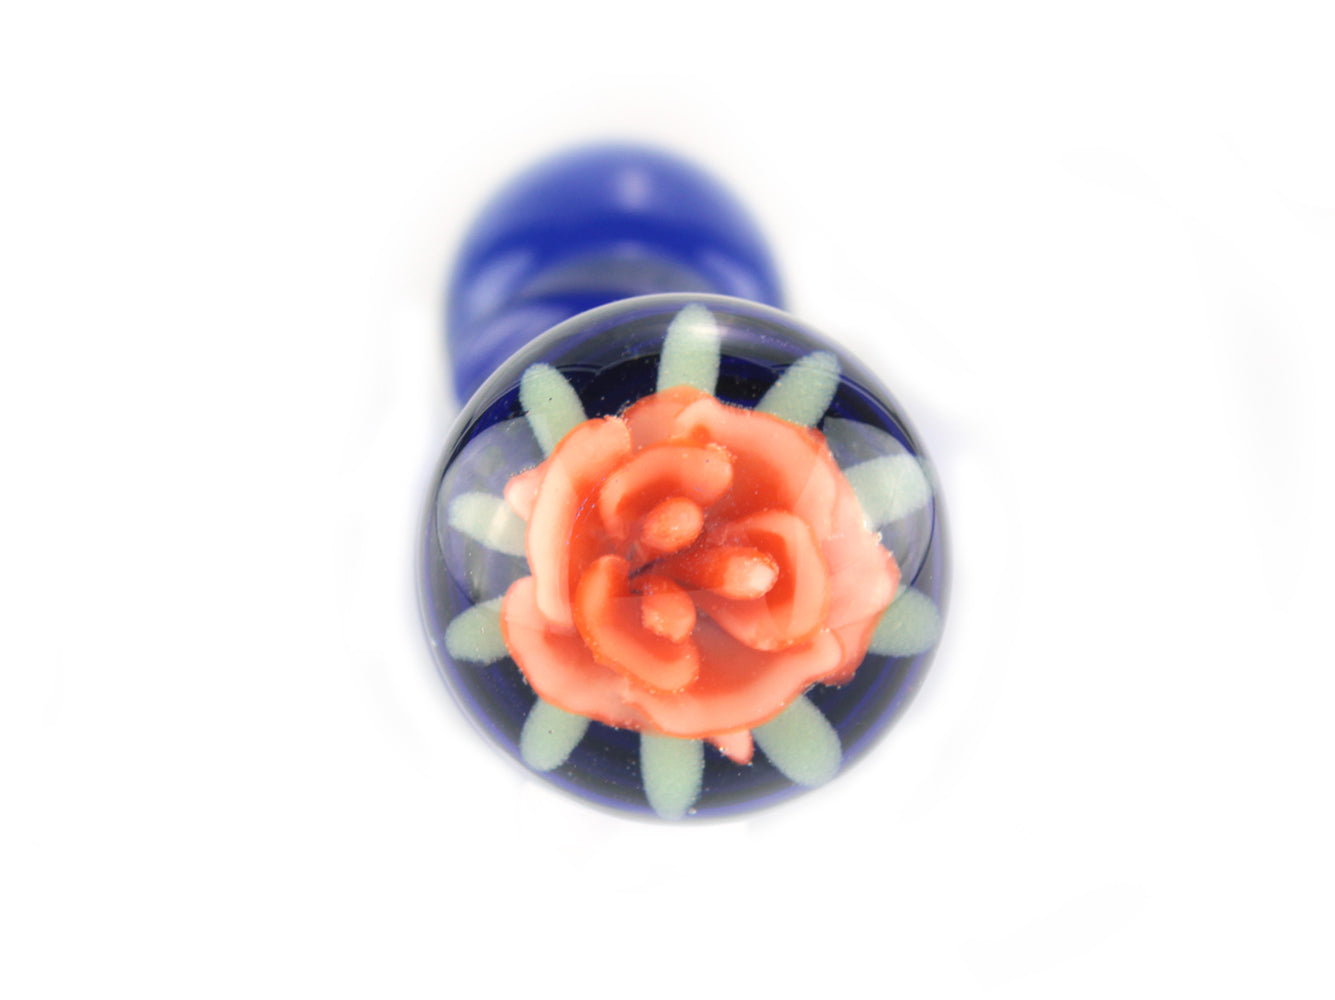 Blue glass dildo with spirals and orange glass flower